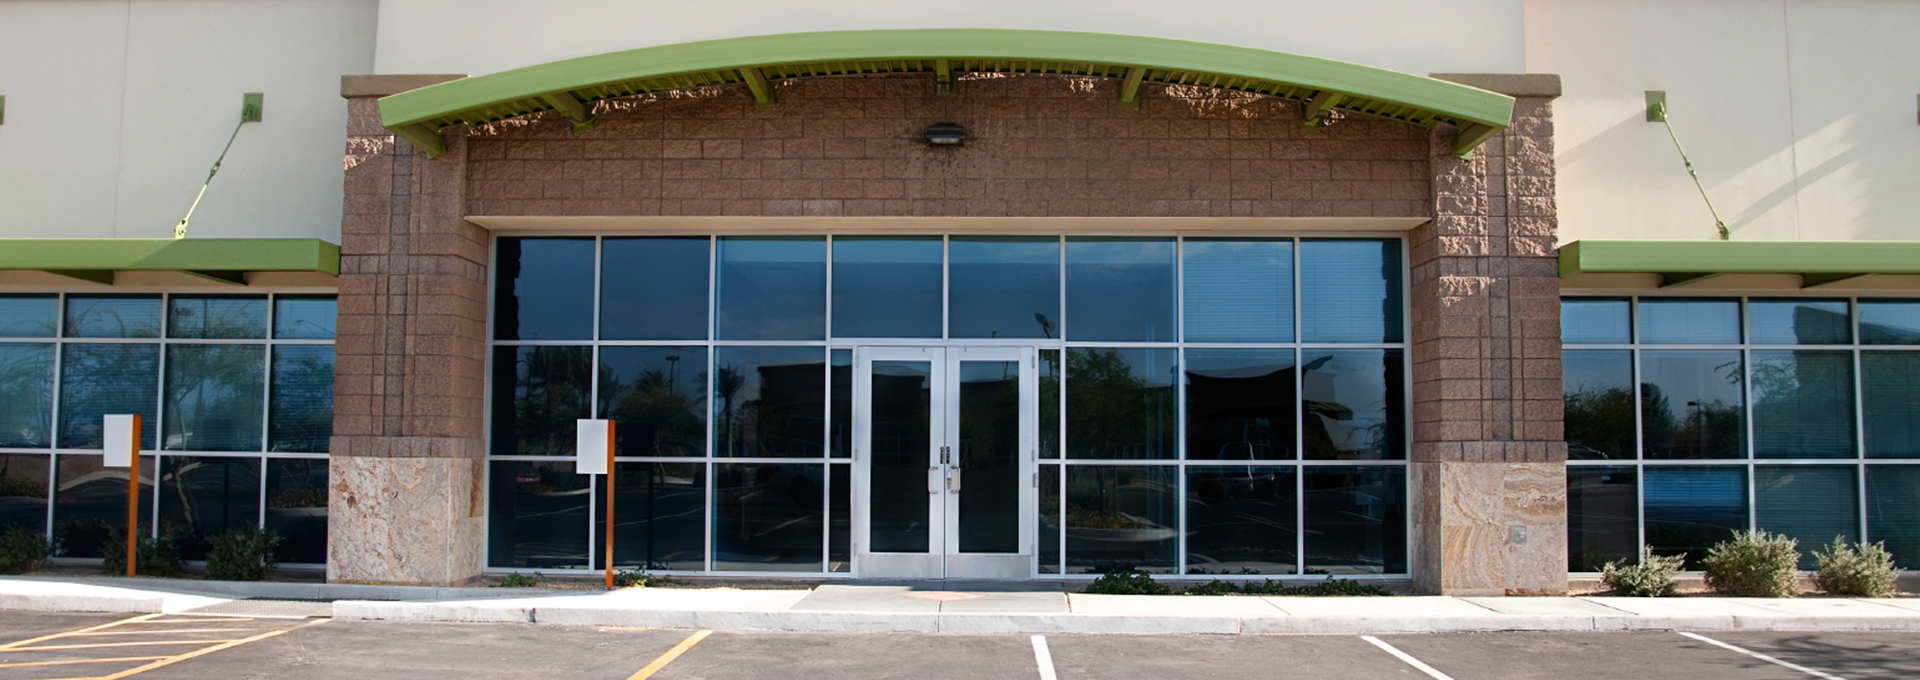 commercial-storefront-50